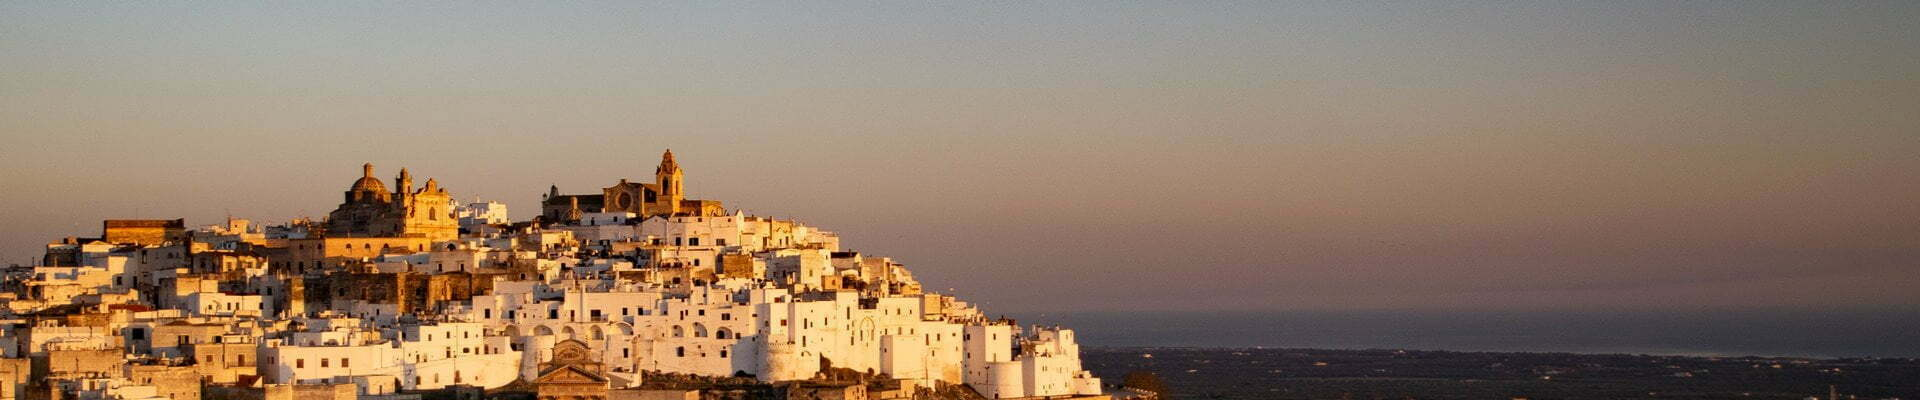 Dawn lights up the white walls of the historic hilltop town of Ostuni in Puglia.